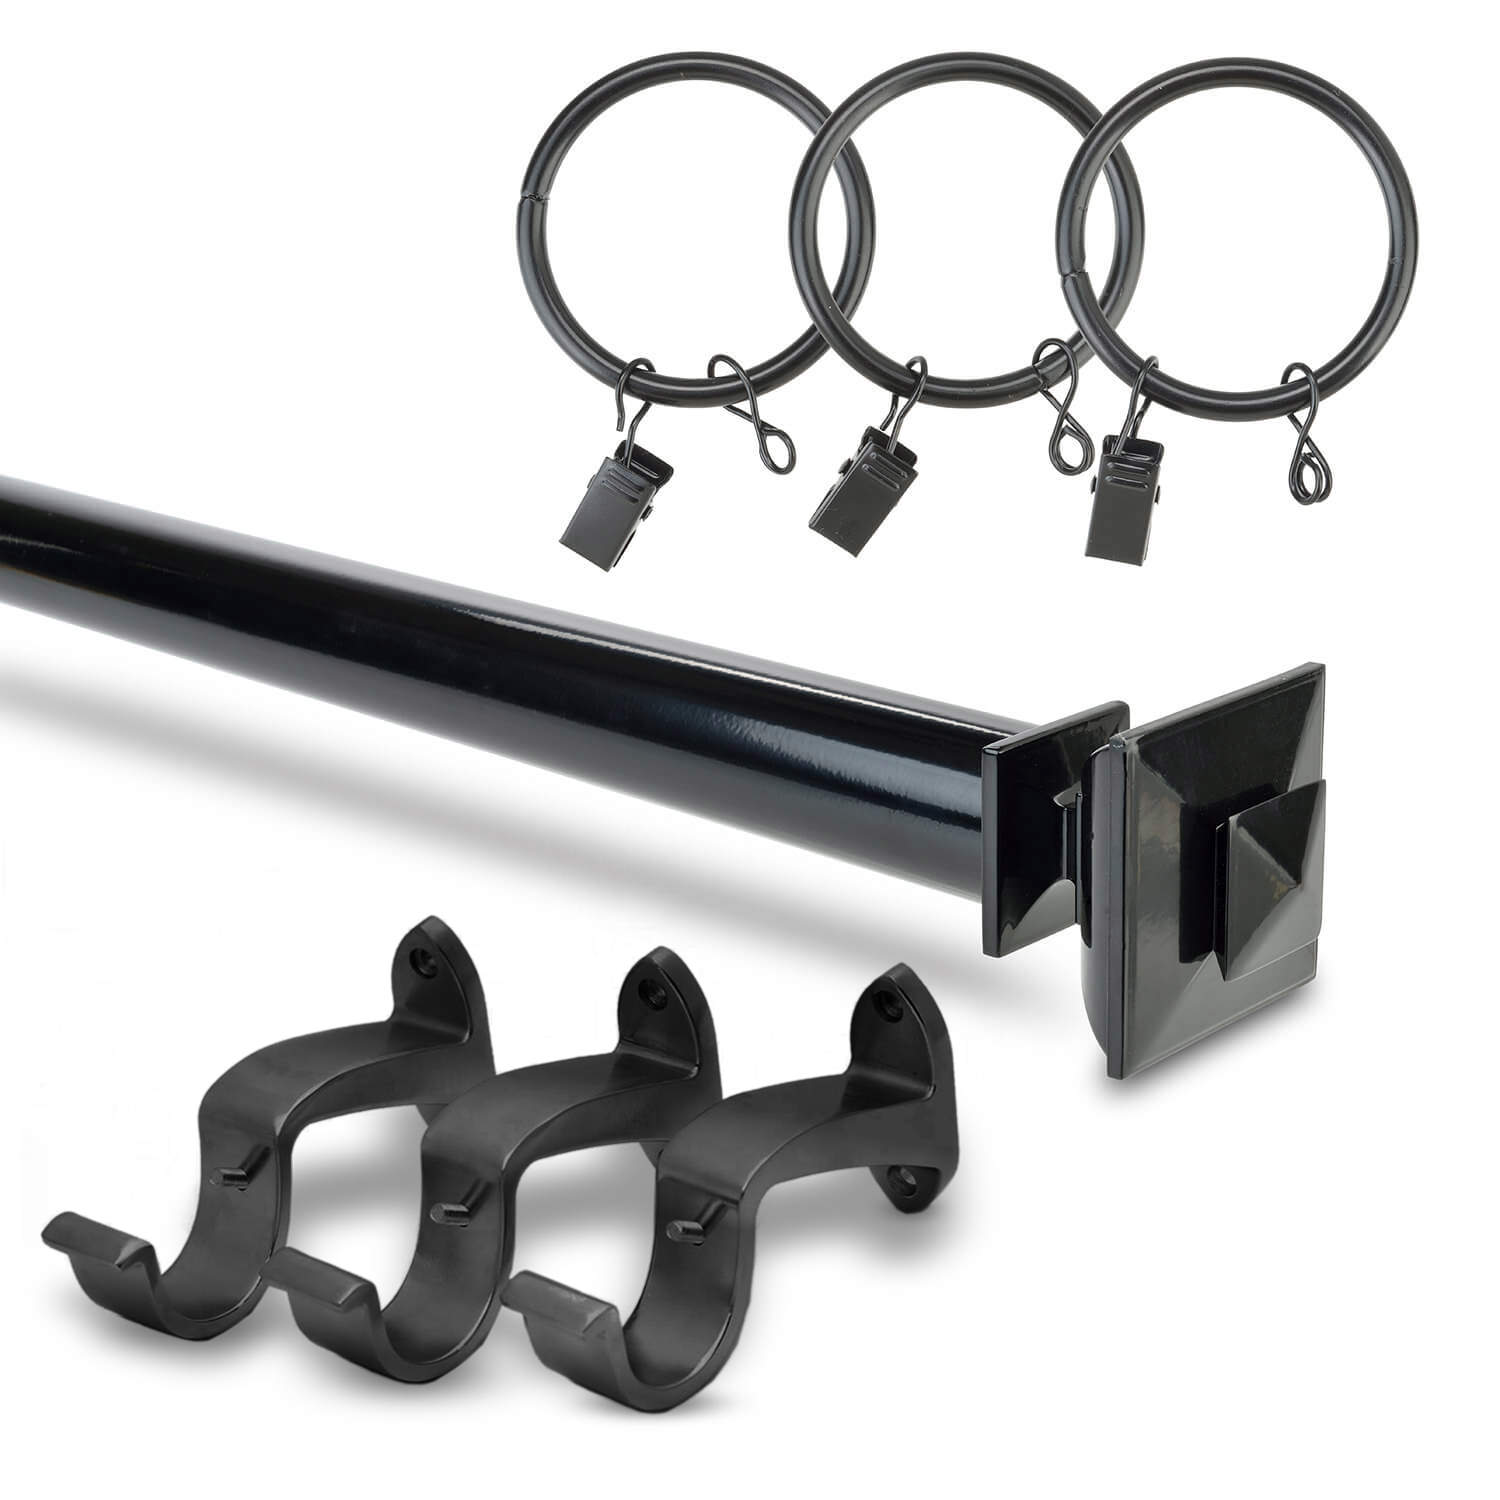 Stacked Square Finial Extendable Rod Set - Gloss Black